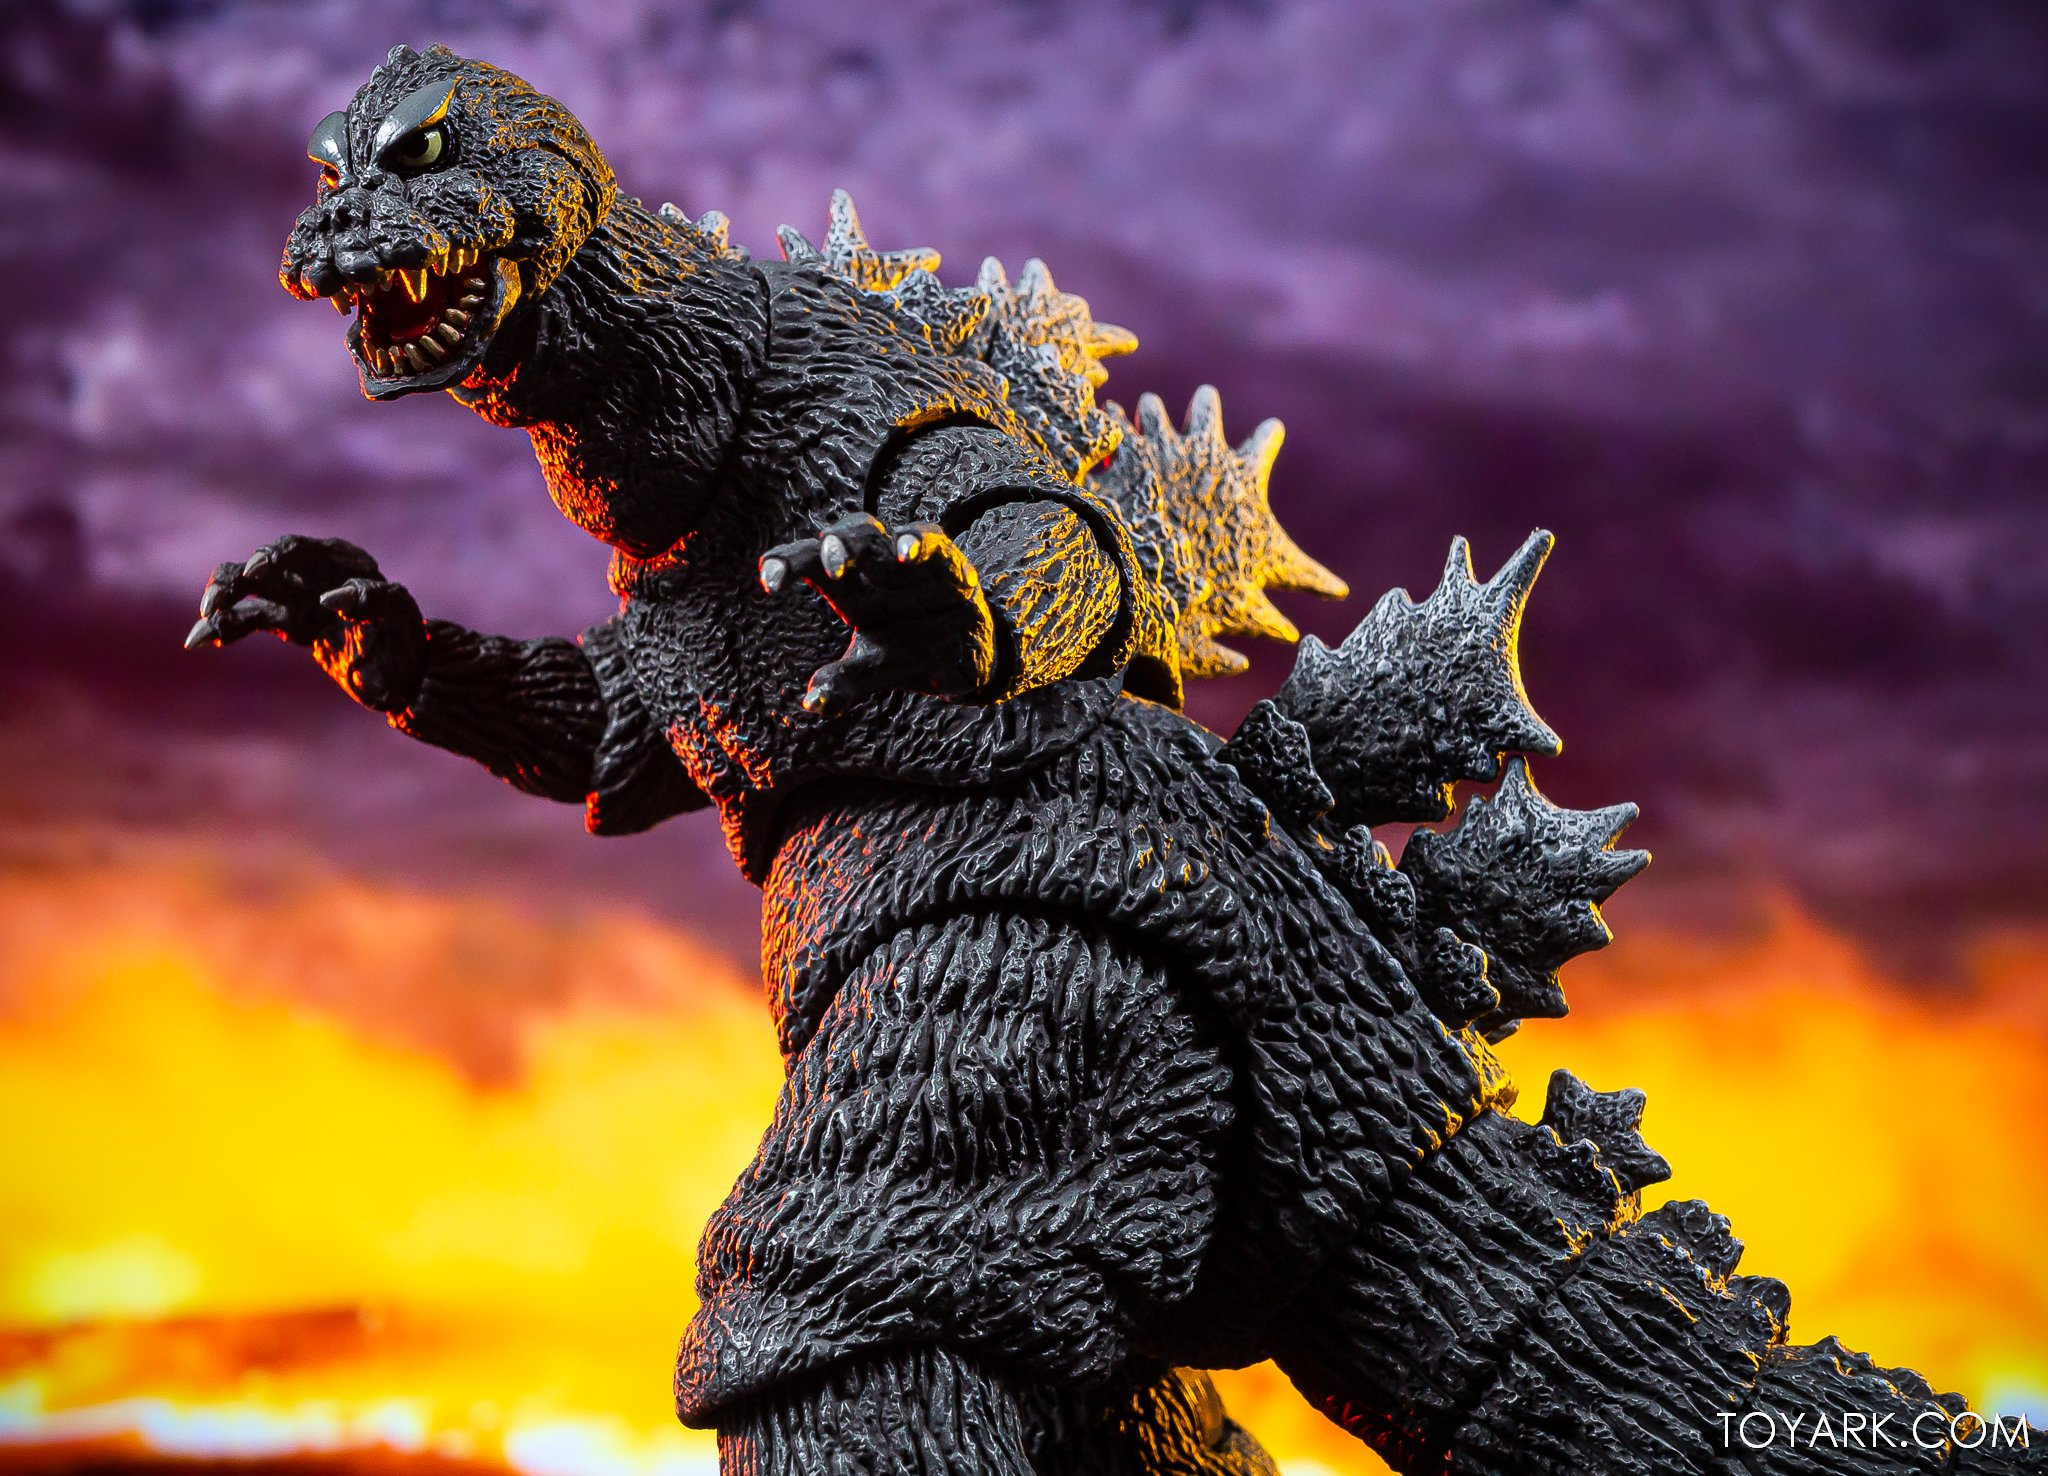 https://news.toyark.com/wp-content/uploads/sites/4/2019/12/NECA-Godzilla-1964-Figure-026.jpg